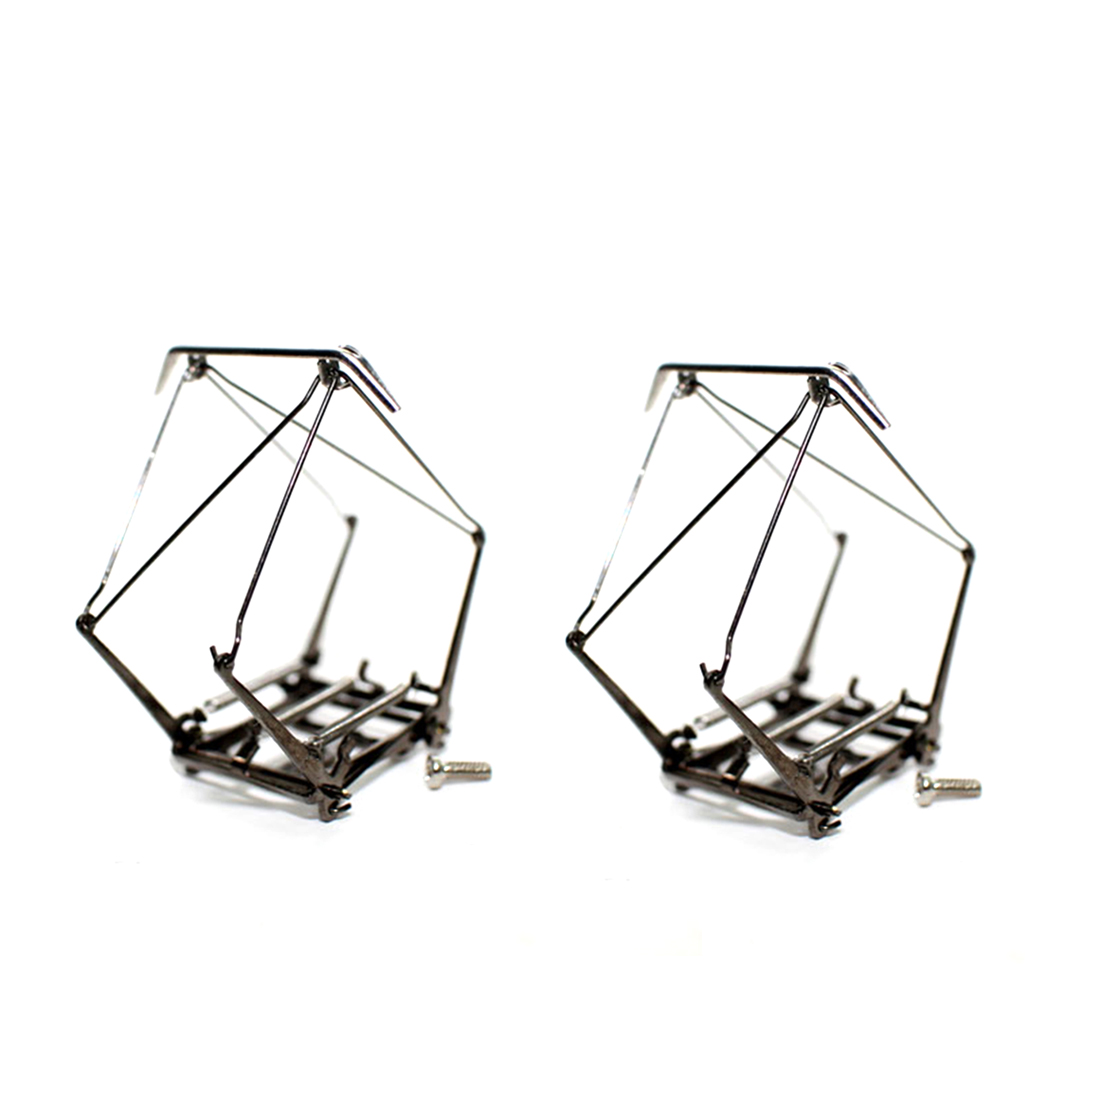 2Pcs HO Scale 1:87 Electric Traction Locomotive Pantograph Arm Bow Train Arm Bow Pantograph Accessories Alloy Can Be Powered